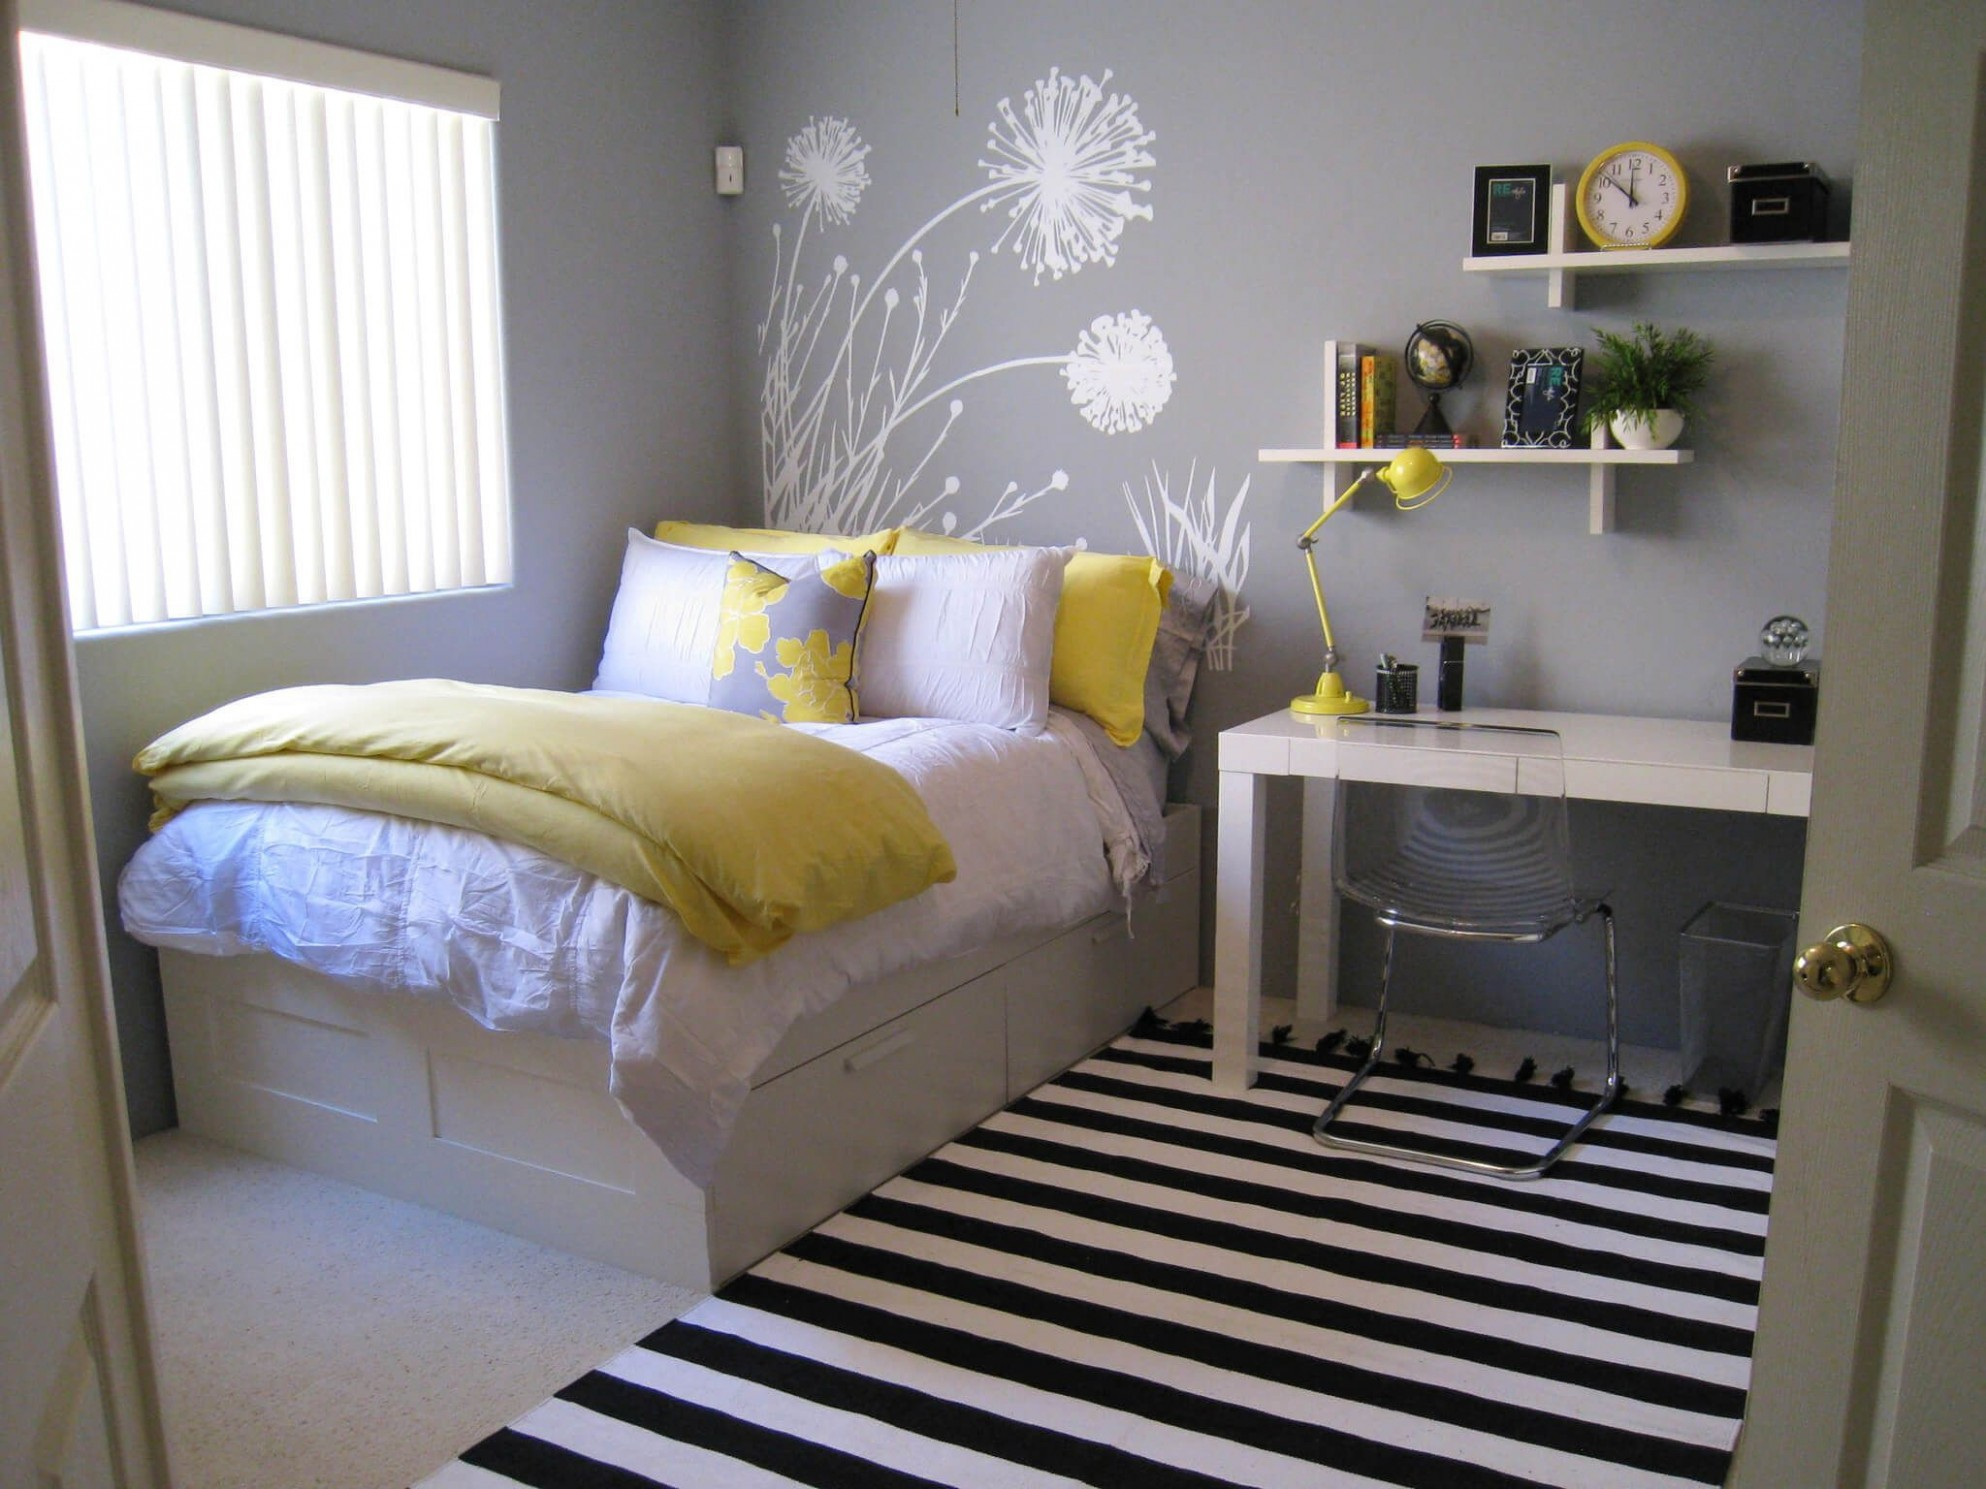 Cheap Bedroom Ideas For Small Rooms  by putra sulung  Medium - Bedroom Ideas Cheap